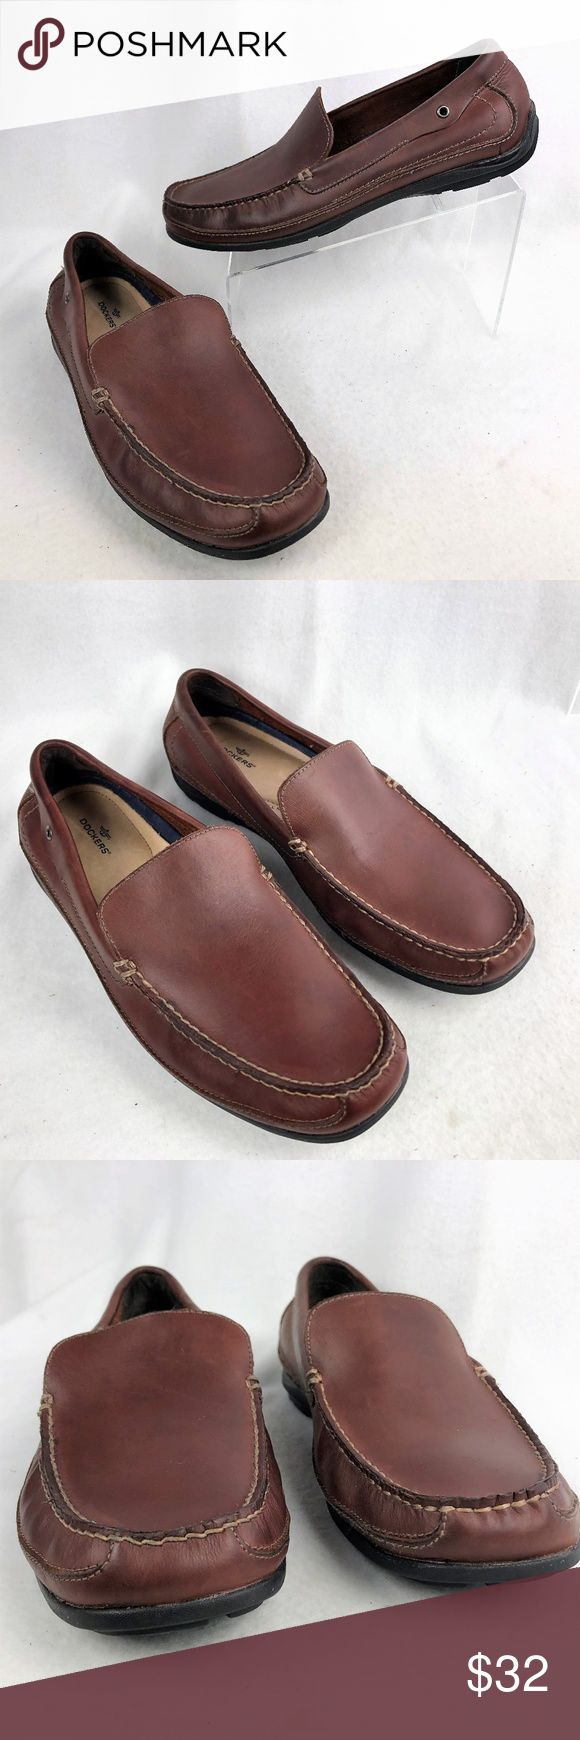 Dockers Leather Slip On Loafers Dockers Milled Leather